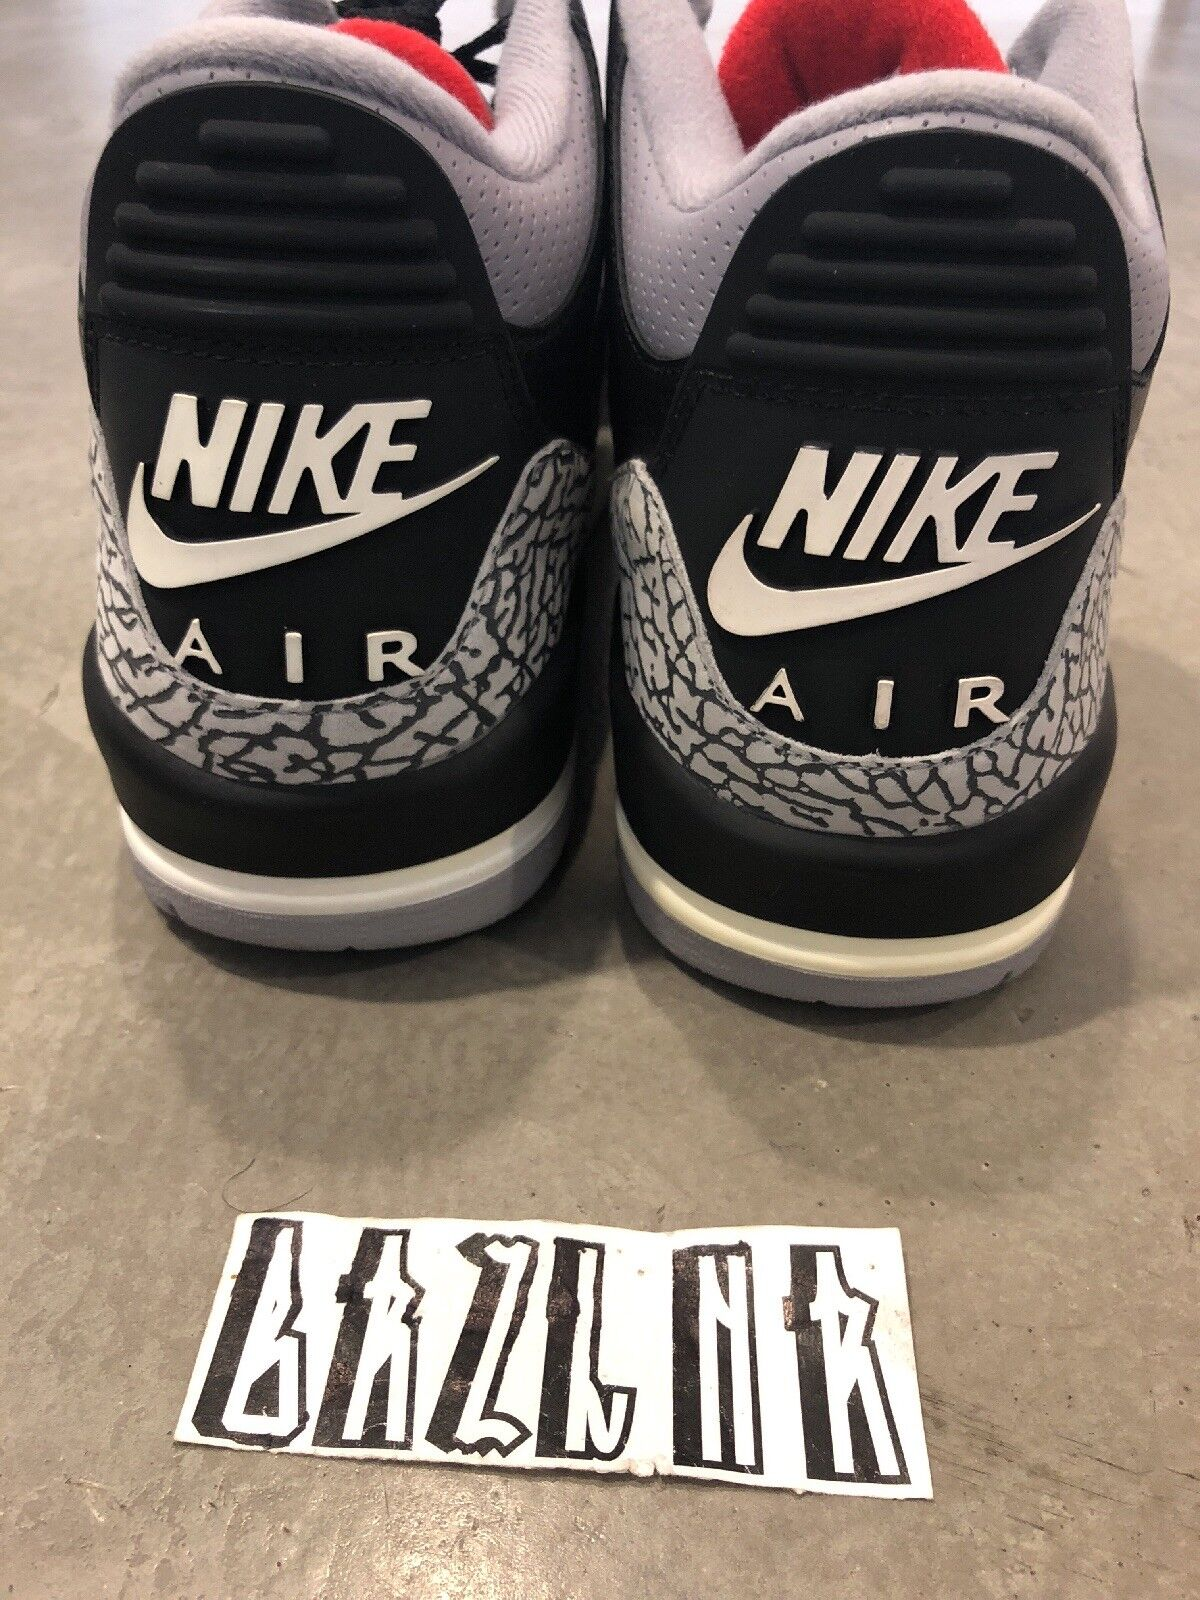 2018 Nike Air Jordan 3 Retro Black/Cement Grey Comfortable Wild casual shoes